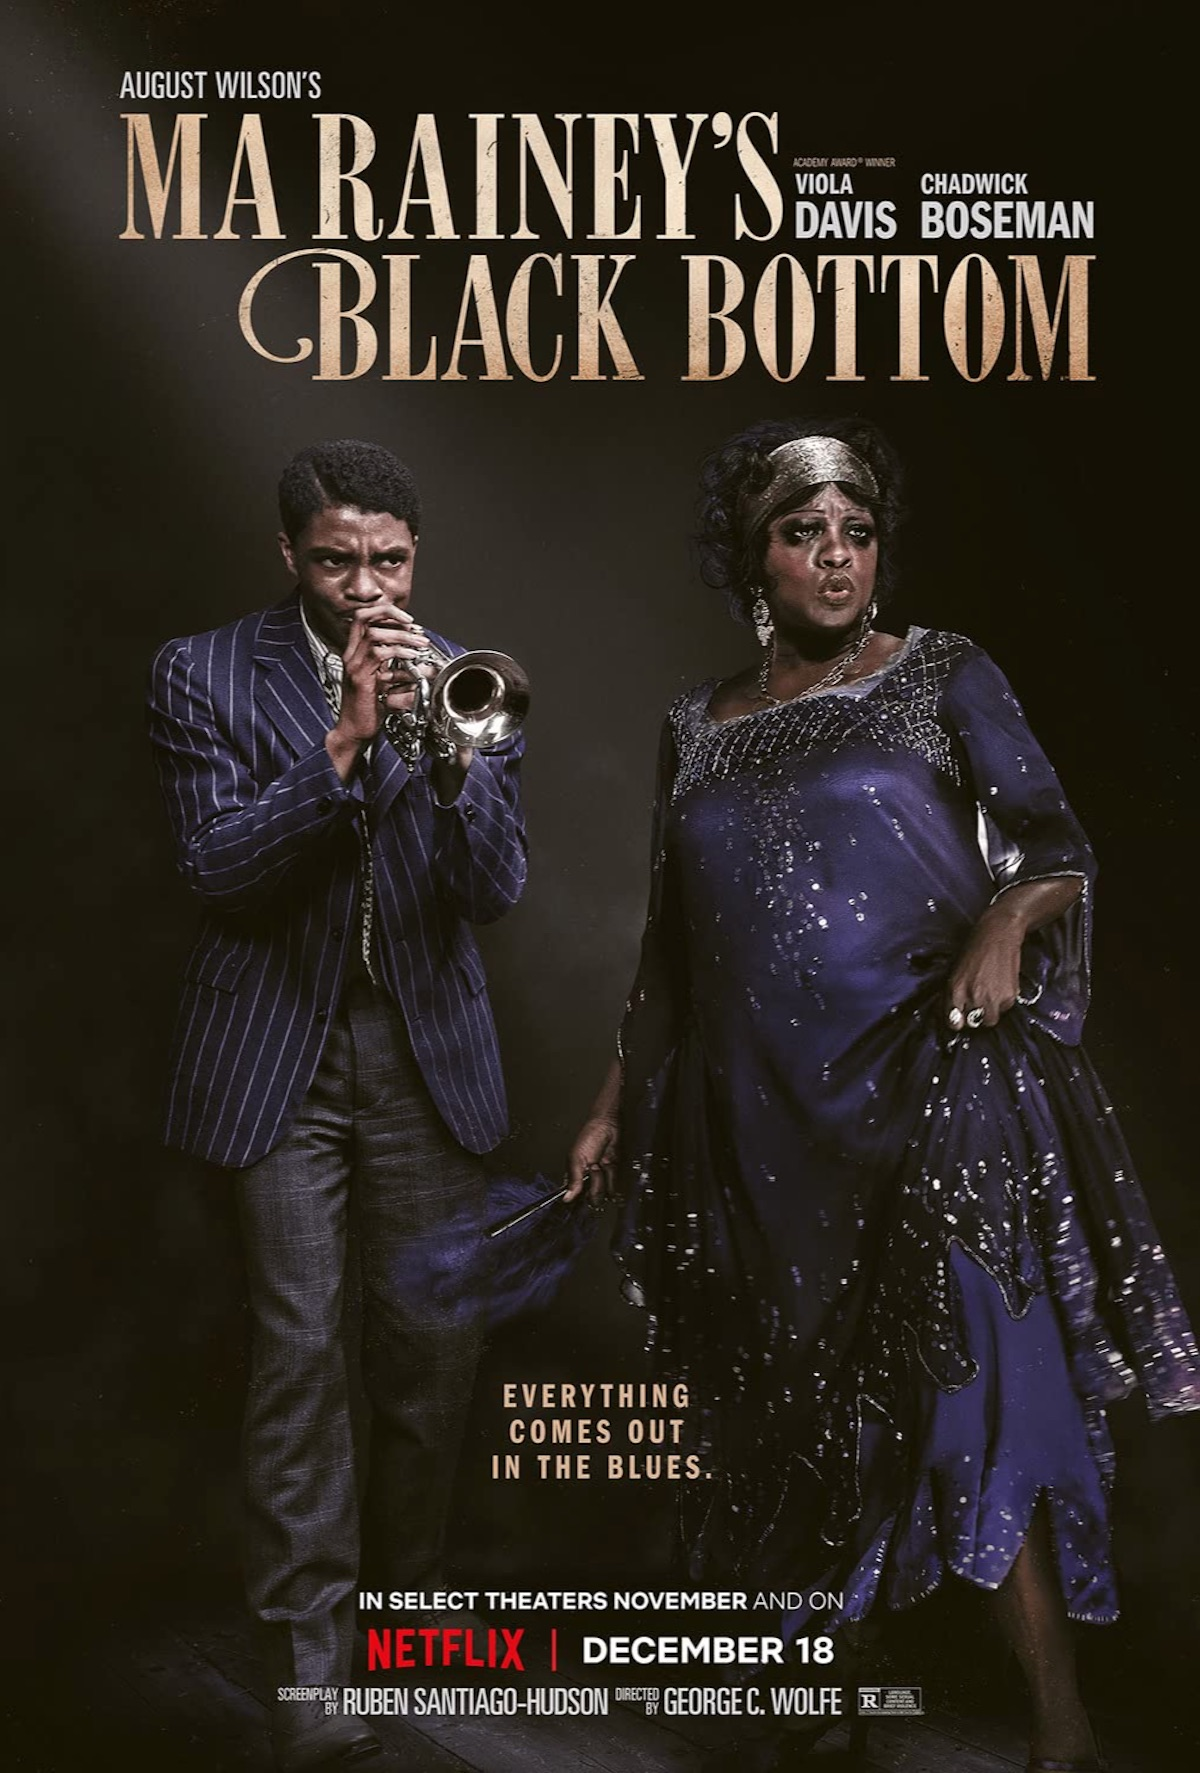 Ma Rainey's Black Bottom - George C. Wolfe